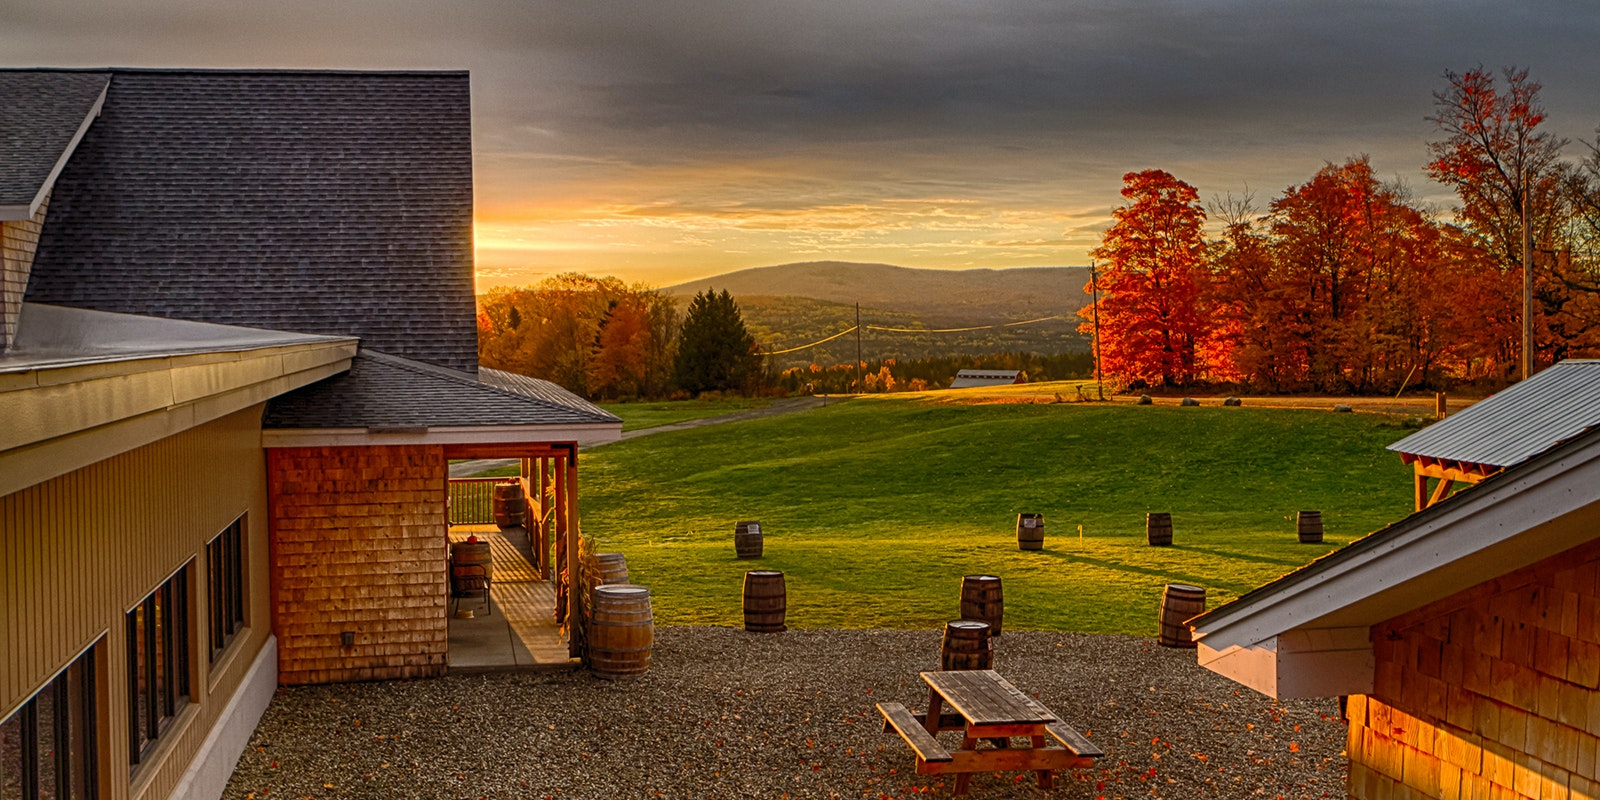 Pair your brew with a view at Hill Farmstead Brewery, in Vermont's remote Northeast Kingdom.